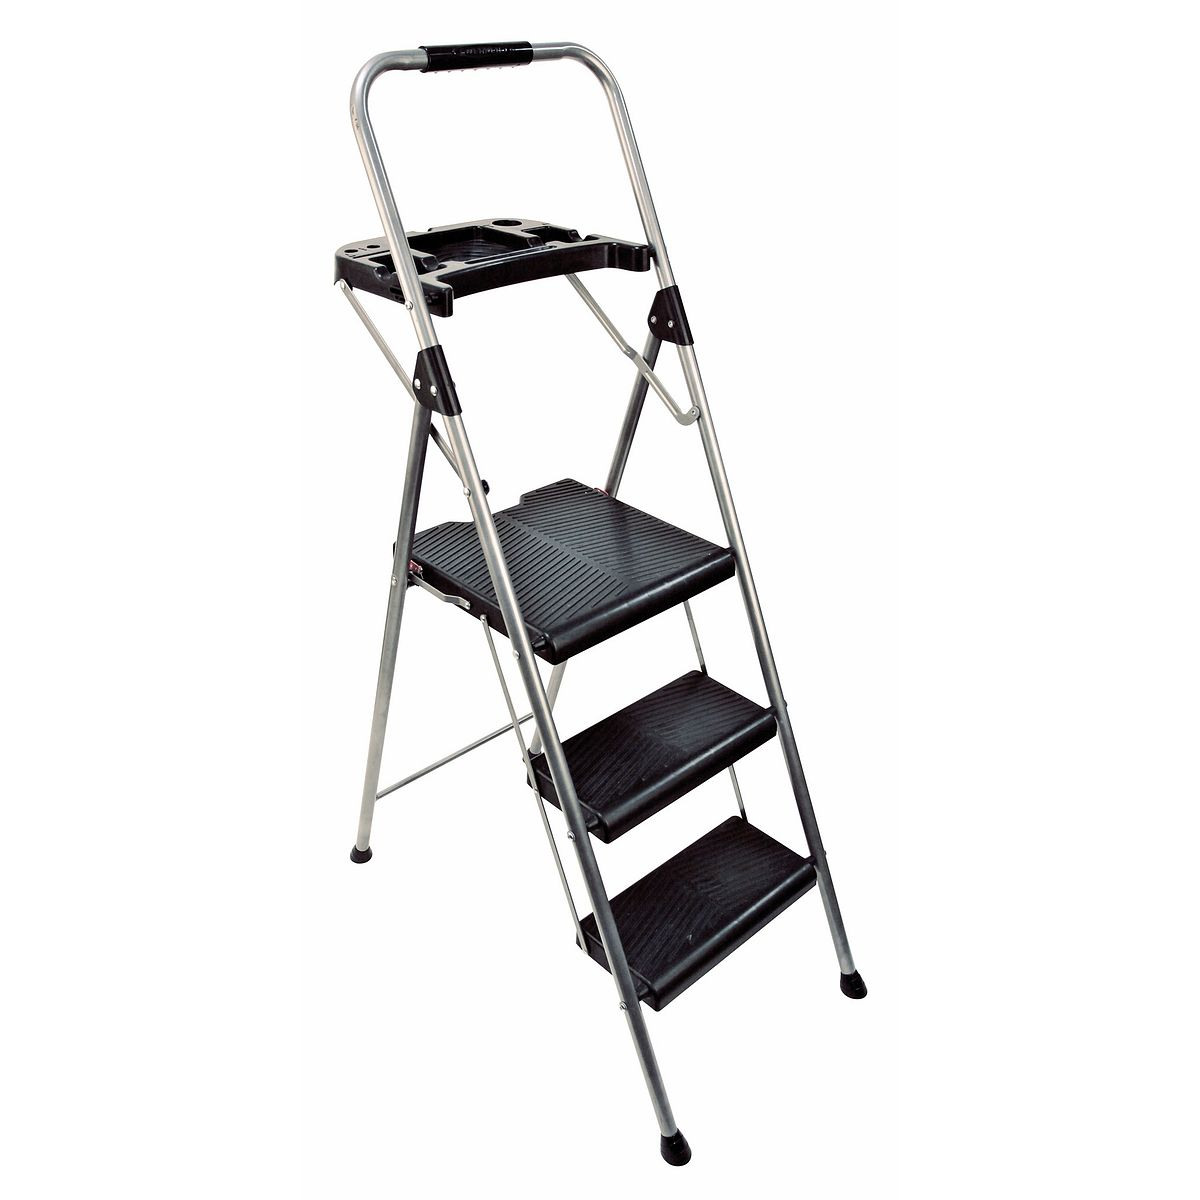 S323p 2 3 Step Type Ii Black Silver Steel Project Step Stool